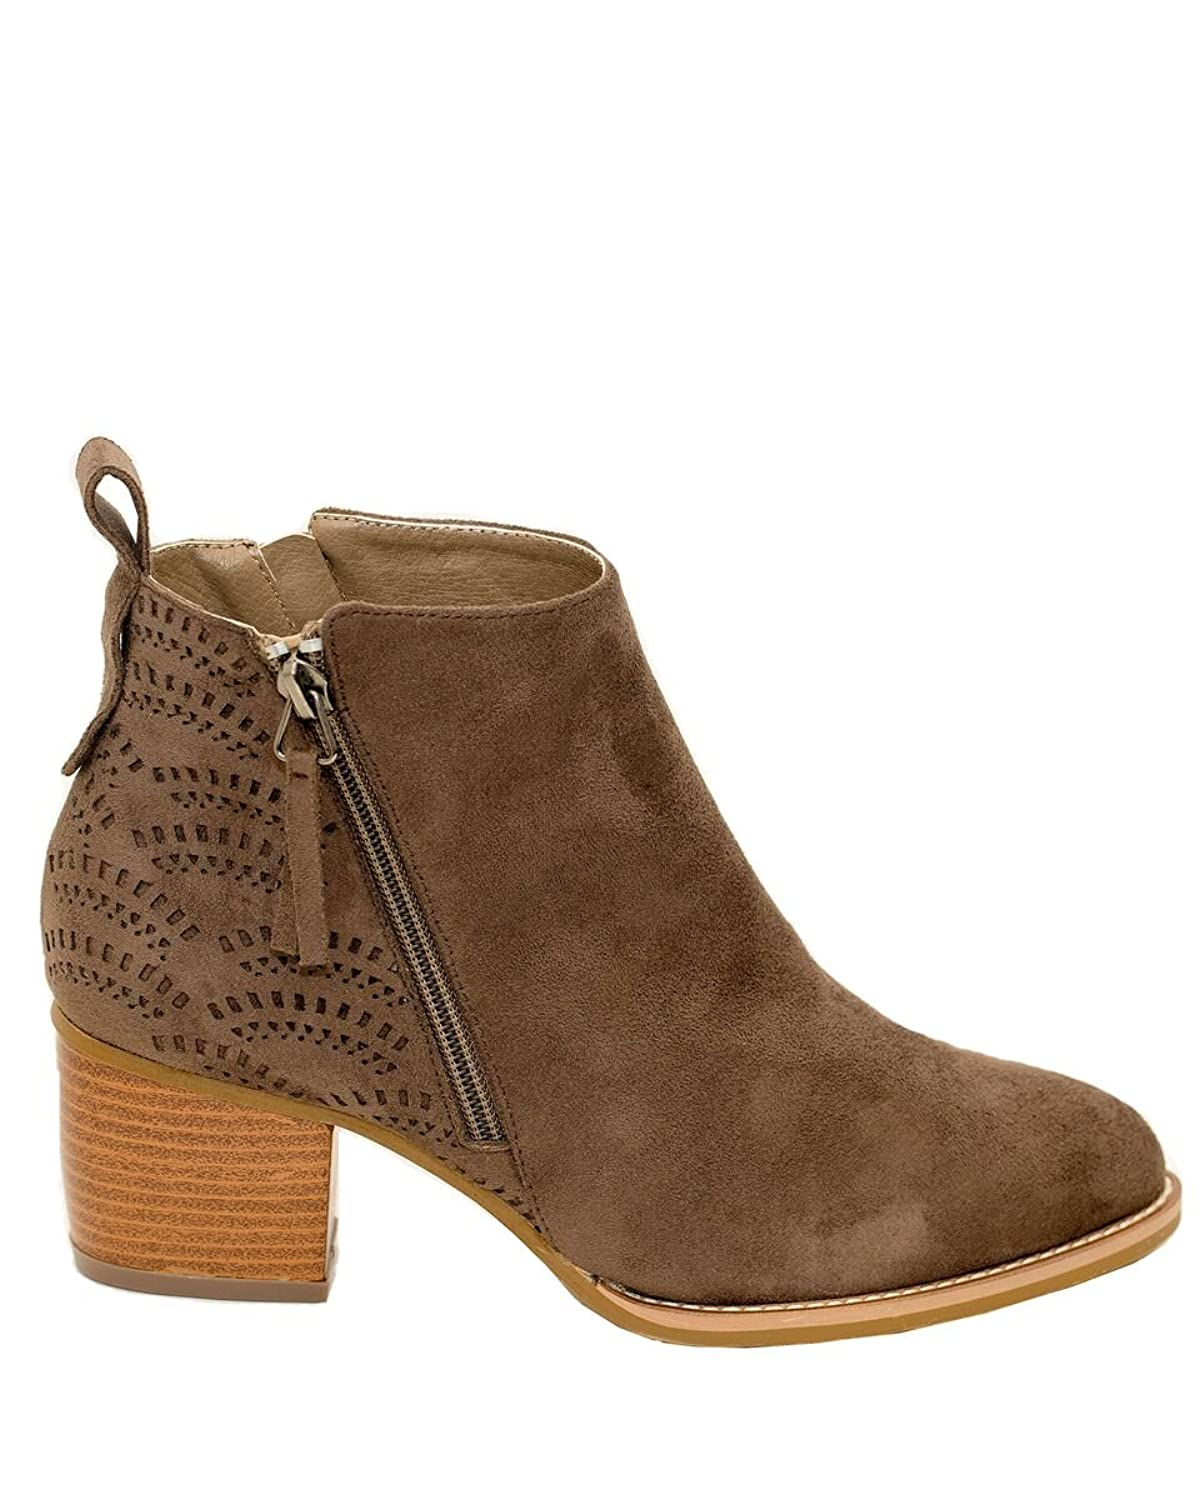 bc0323065 well-wreapped GC Shoes Women's Adele Laser Cut Stacked Heel Ankle Booties